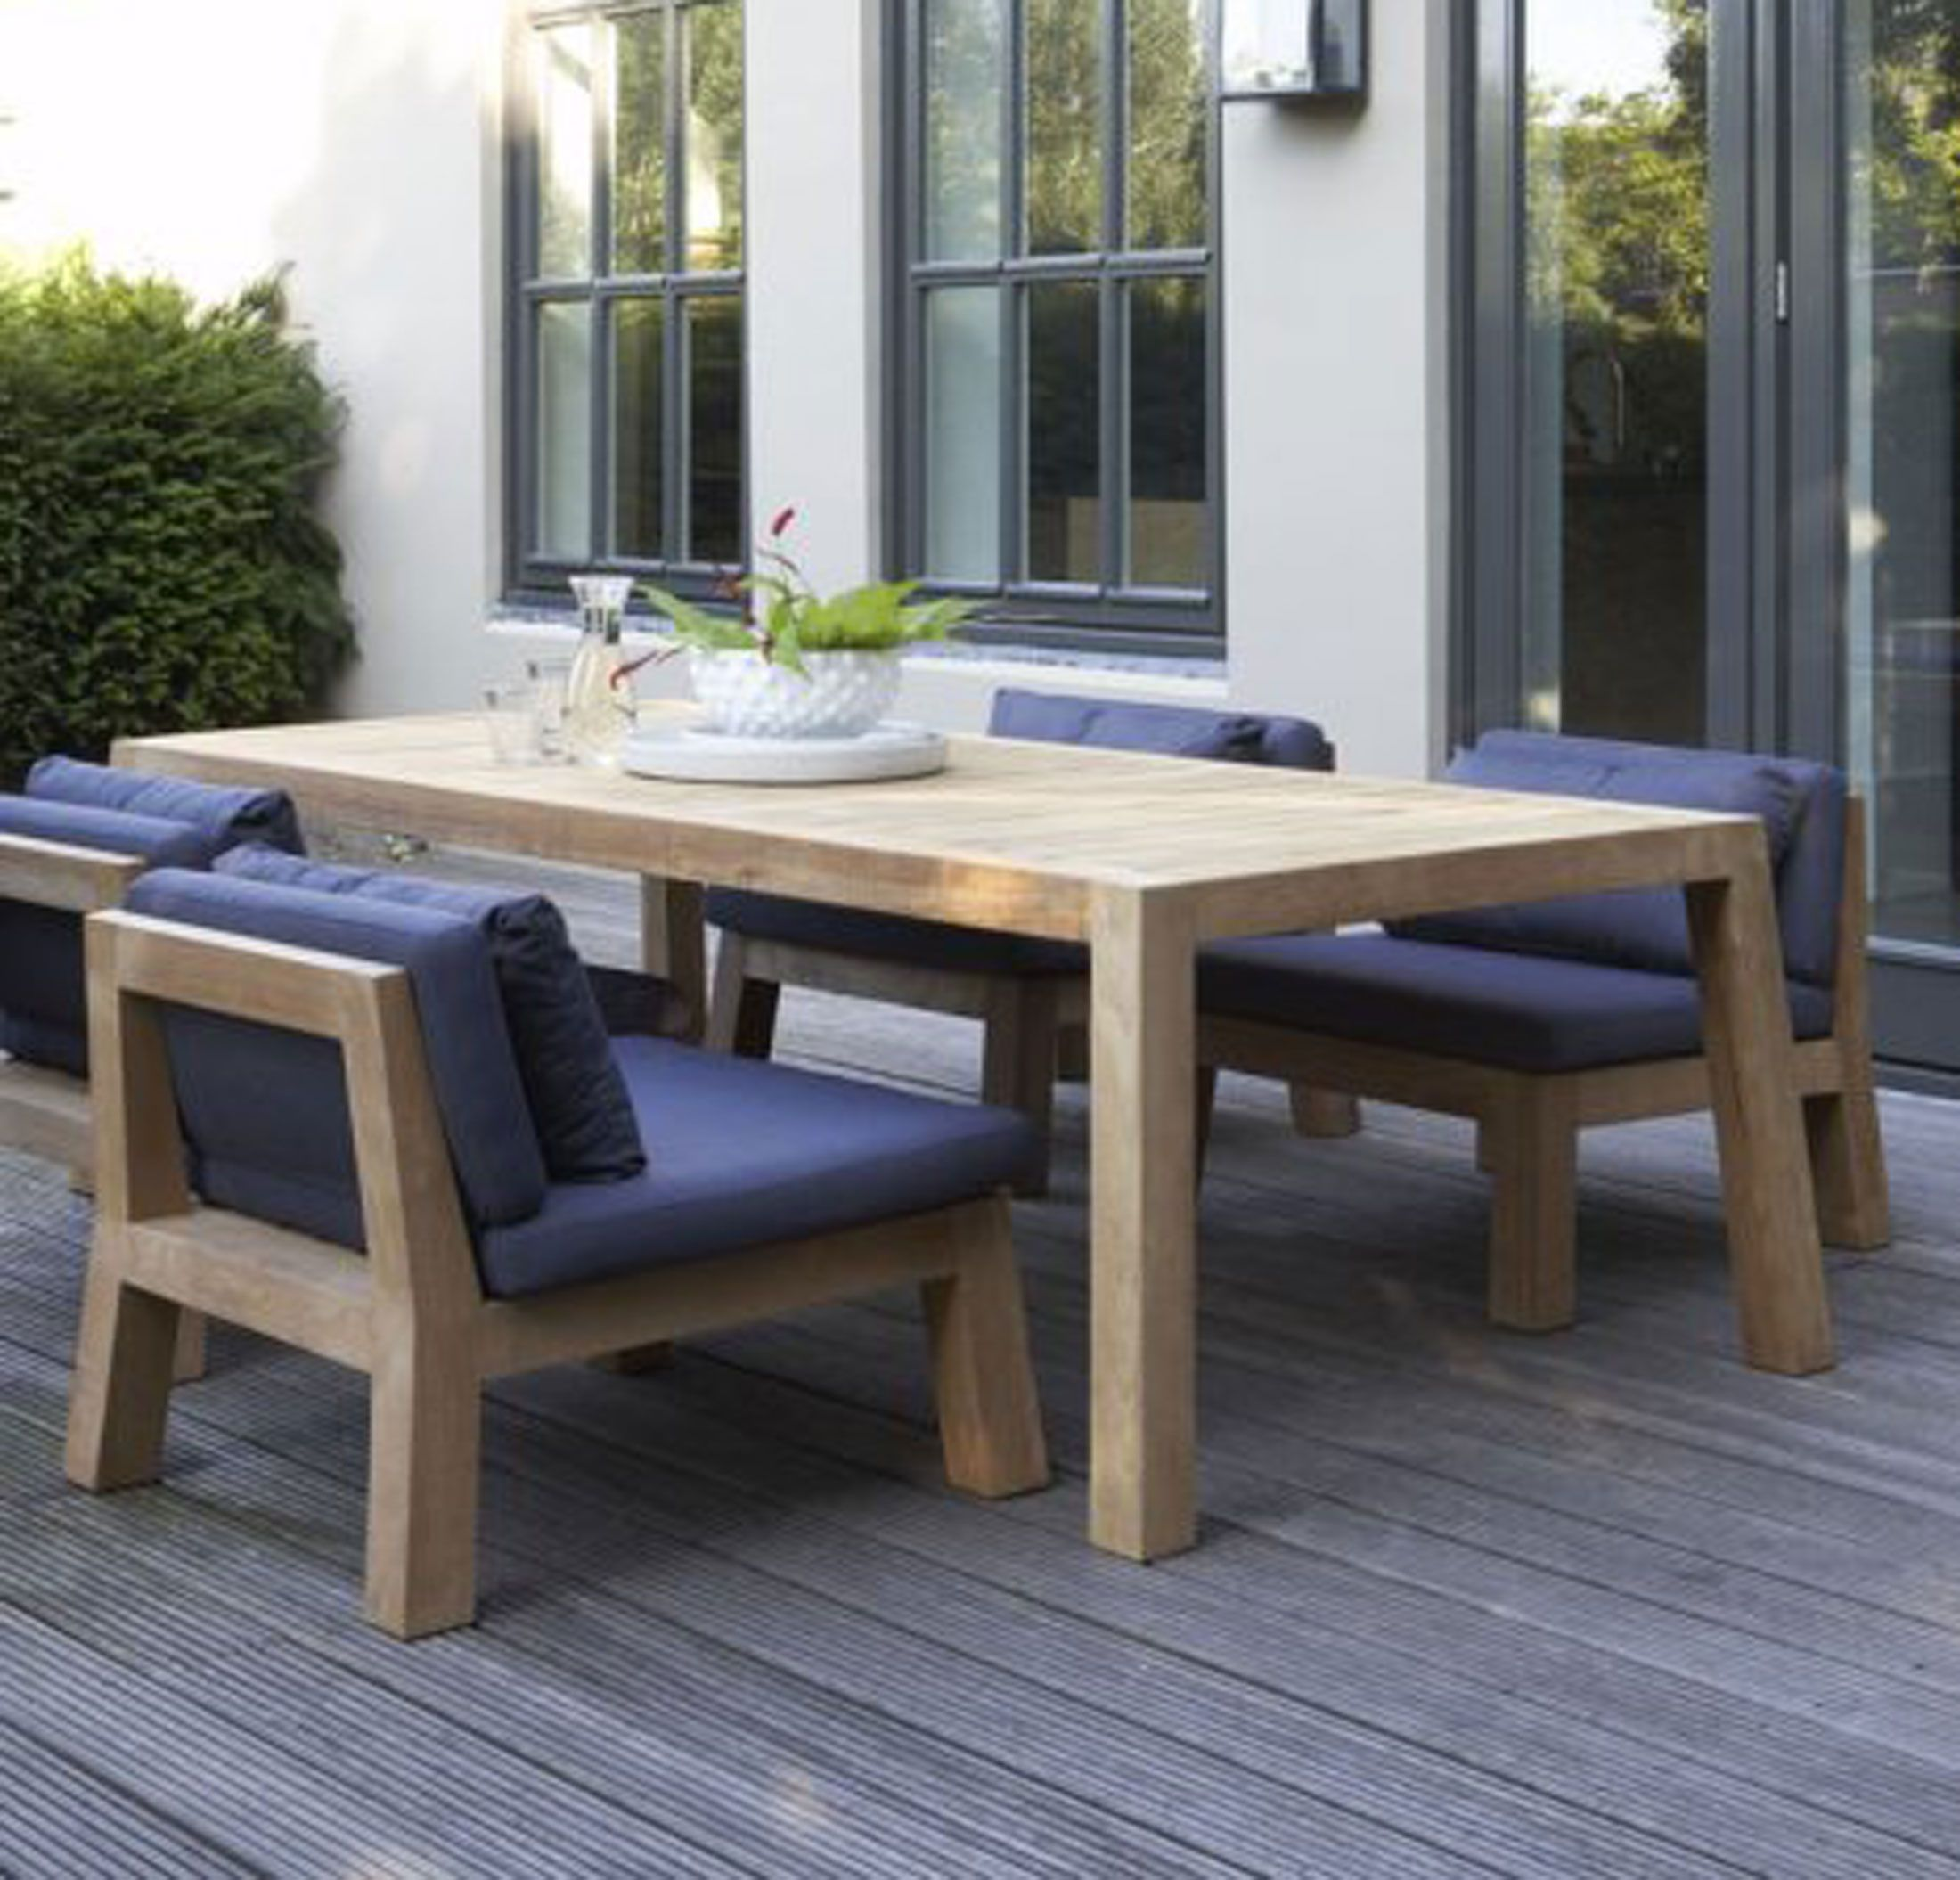 Piet Boon Outdoor Furniture Available At Staffan Tollgard Design Store